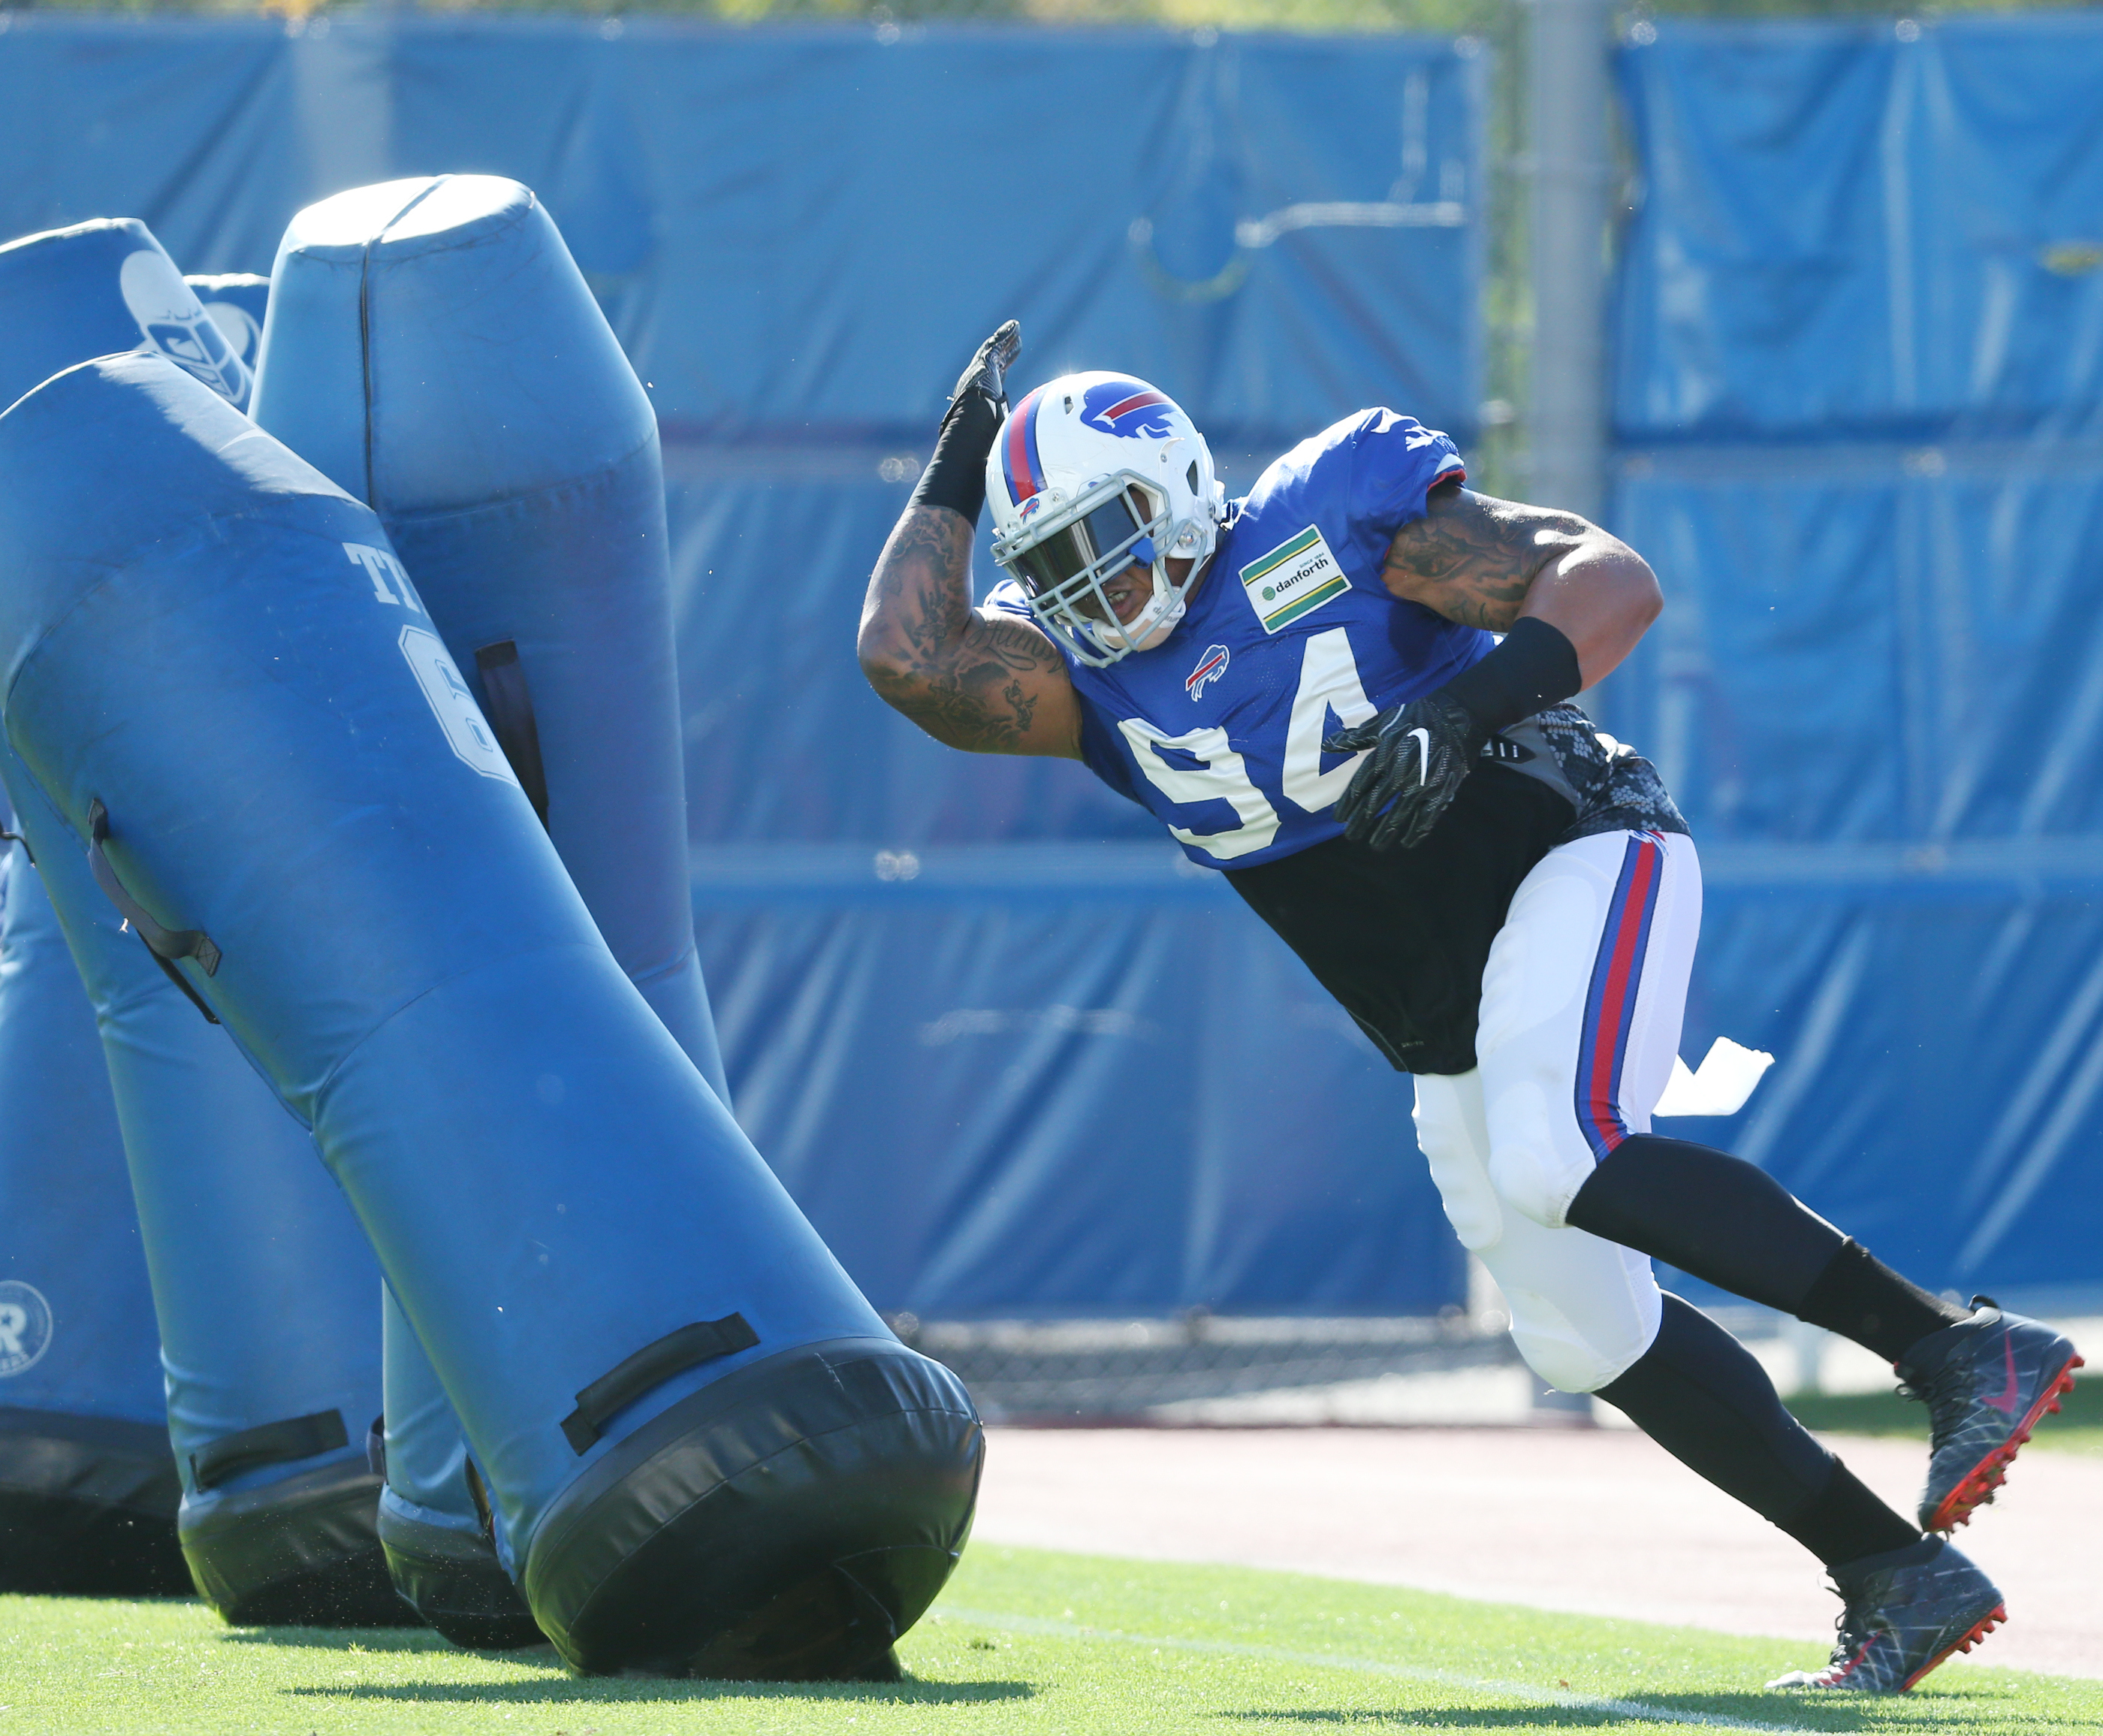 Buffalo Bills defensive tackle Jerel Worthy (94) works out during a practice this season. (James P. McCoy/ Buffalo News)